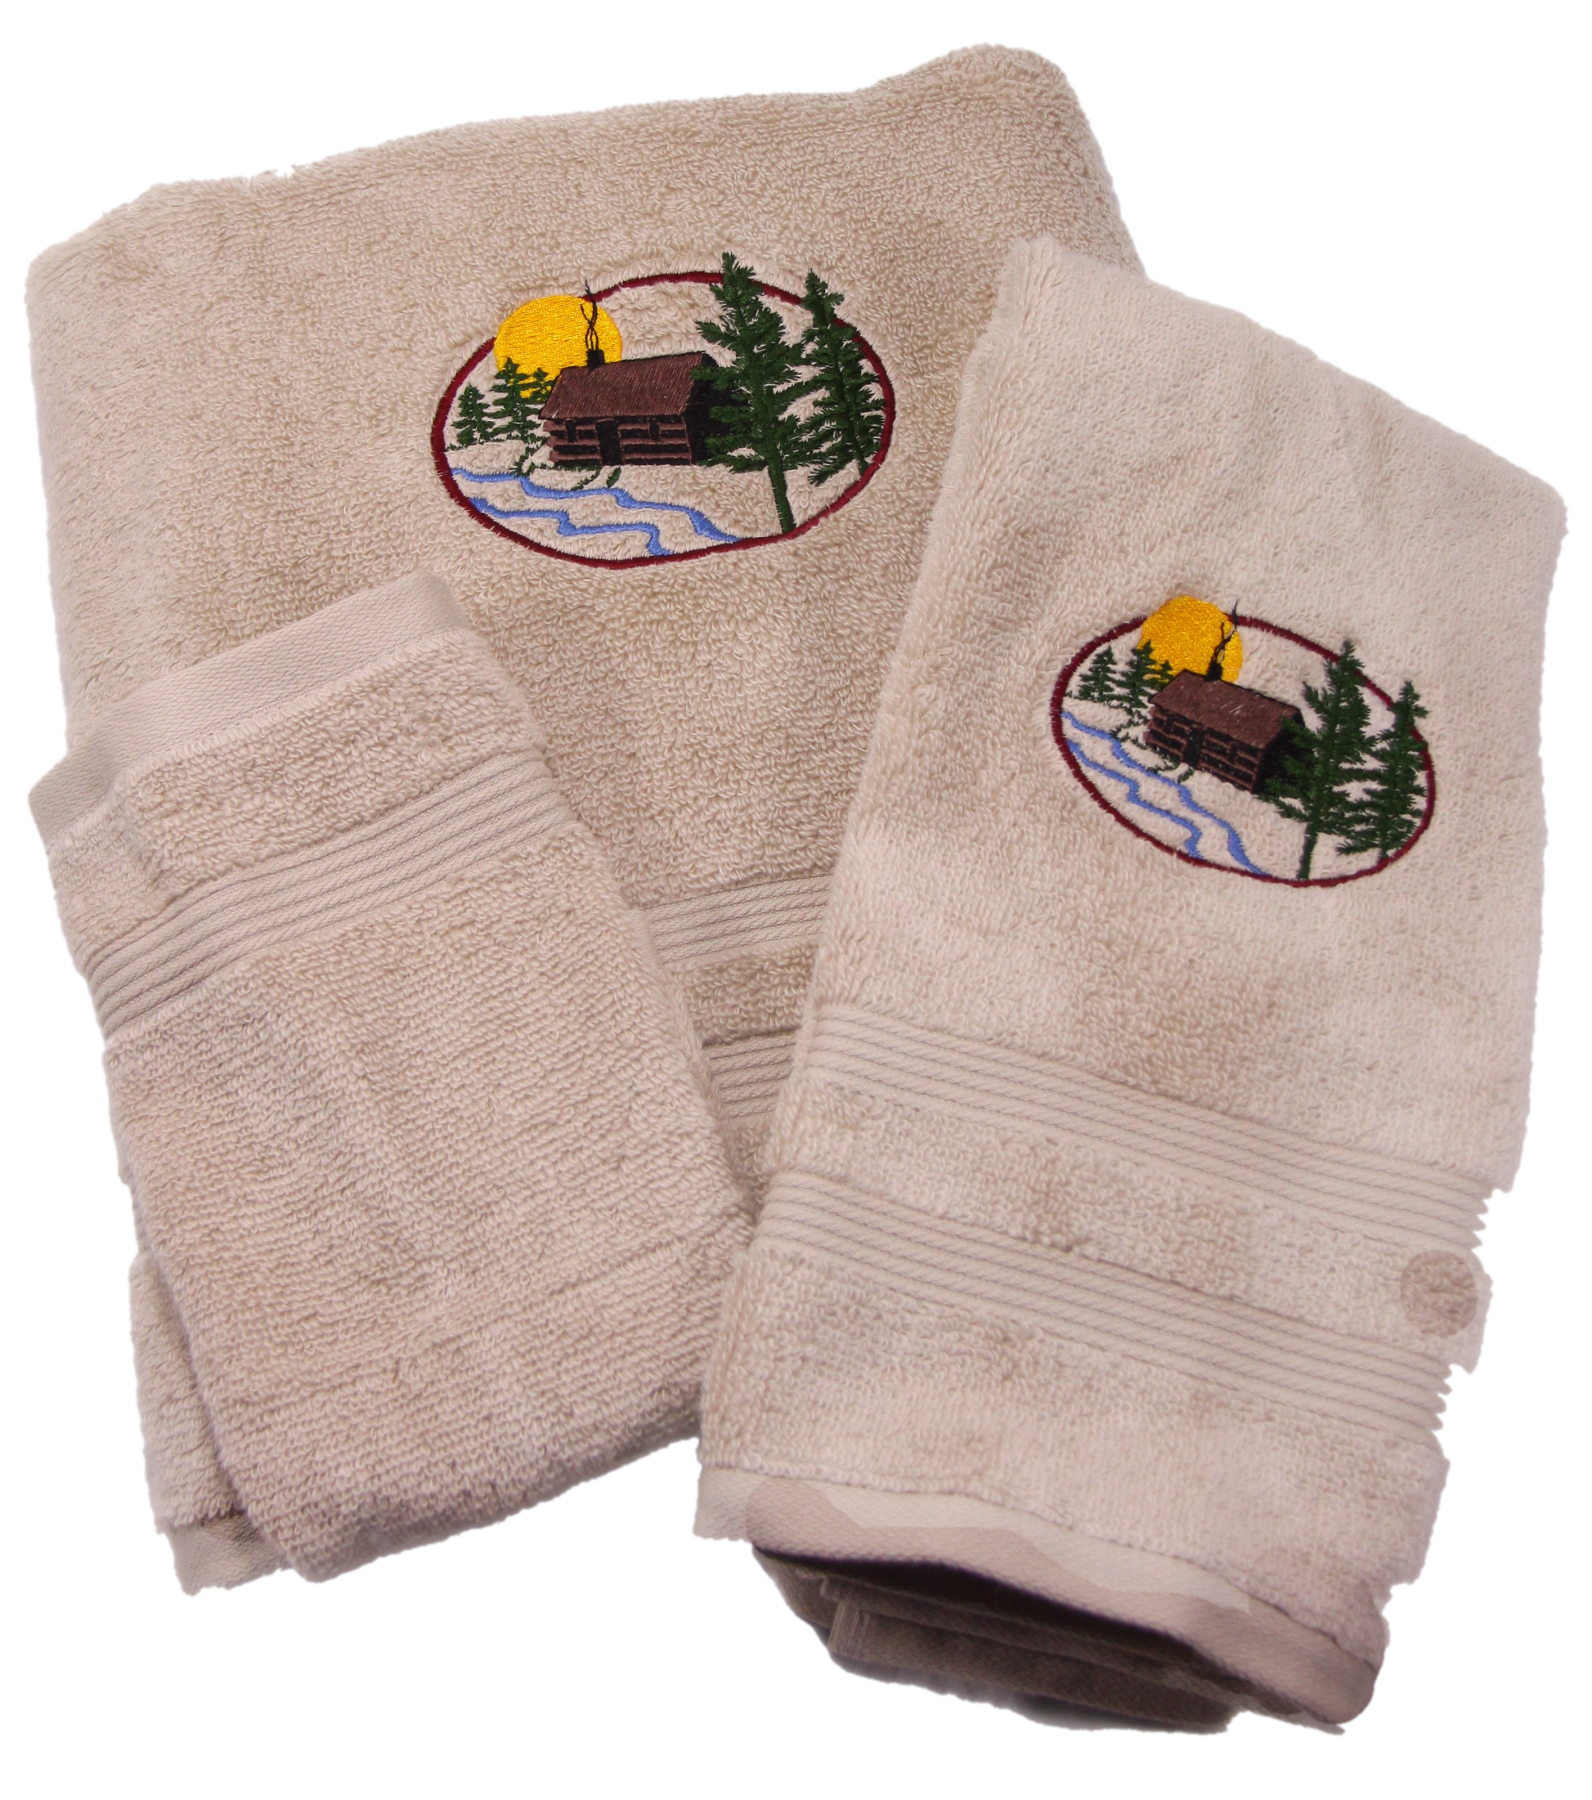 Embroidered log cabin in the woods on cotton bath Towel